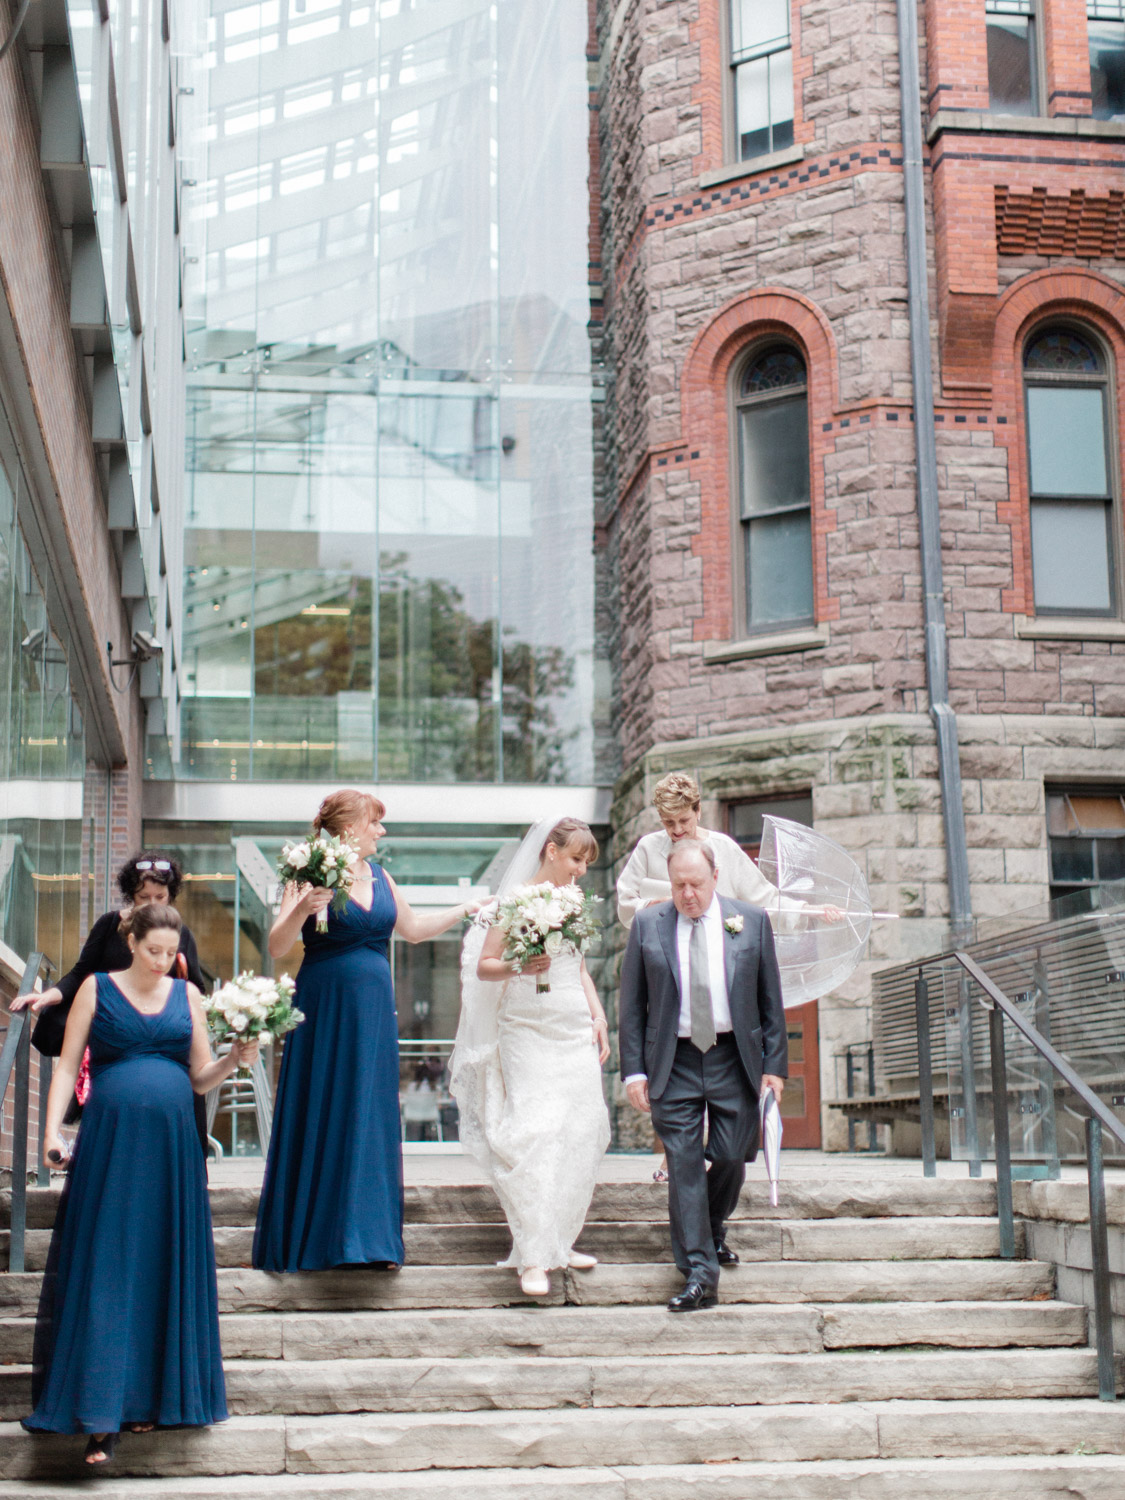 A music lover's wedding at the royal conservatory of music and trinity chapel, by Toronto wedding photographer corynn fowler photography